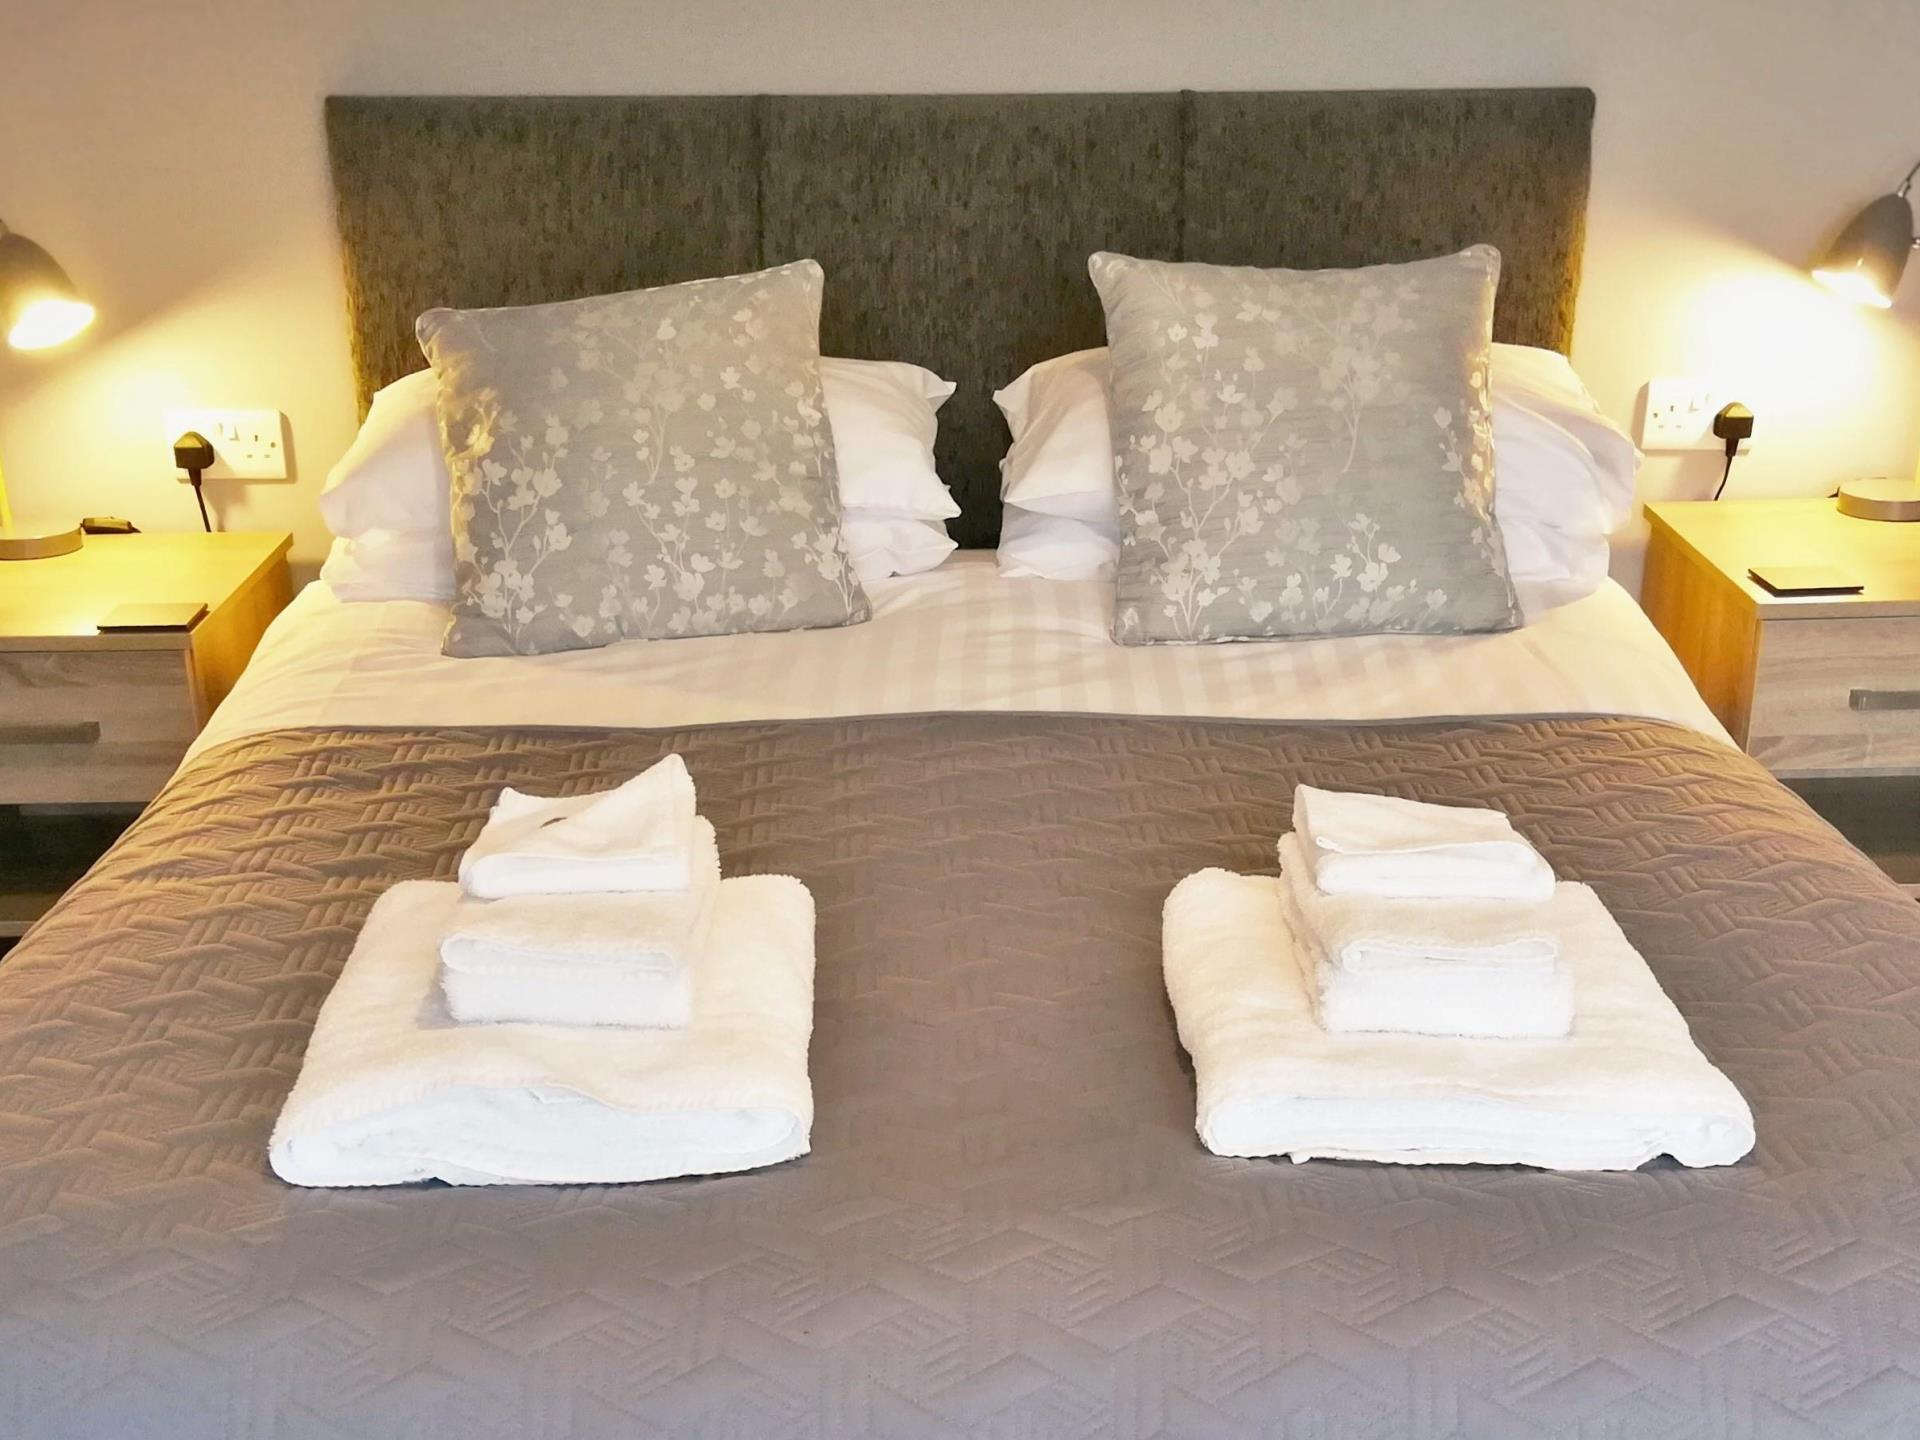 Room 1 - King size bed